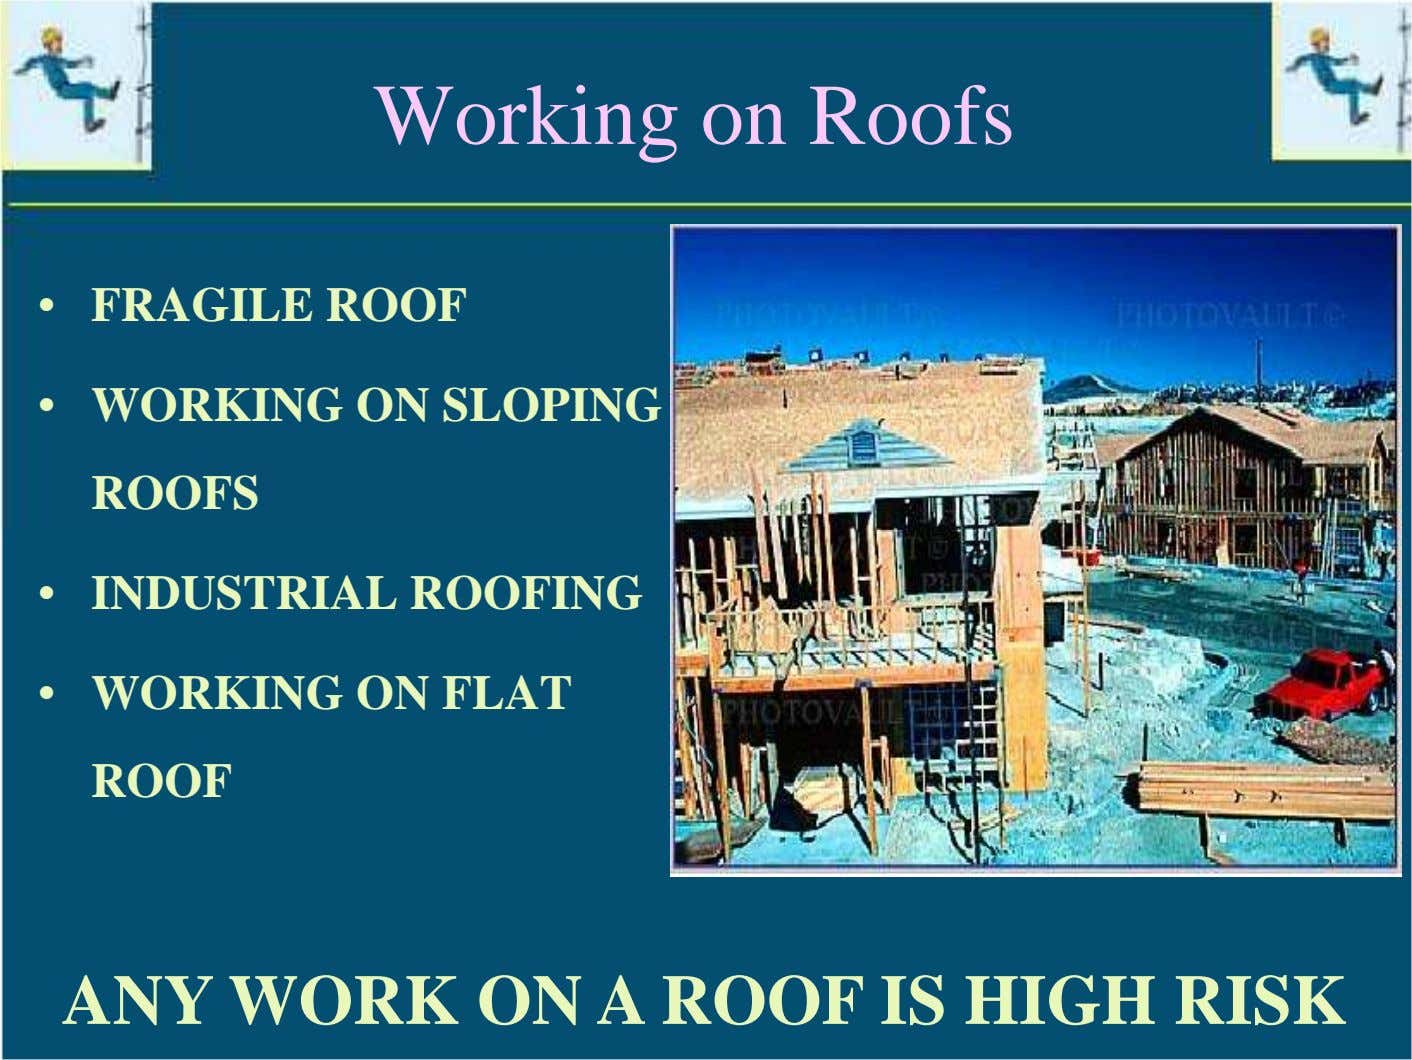 Working on Roofs • FRAGILE ROOF • WORKING ON SLOPING ROOFS • INDUSTRIAL ROOFING •